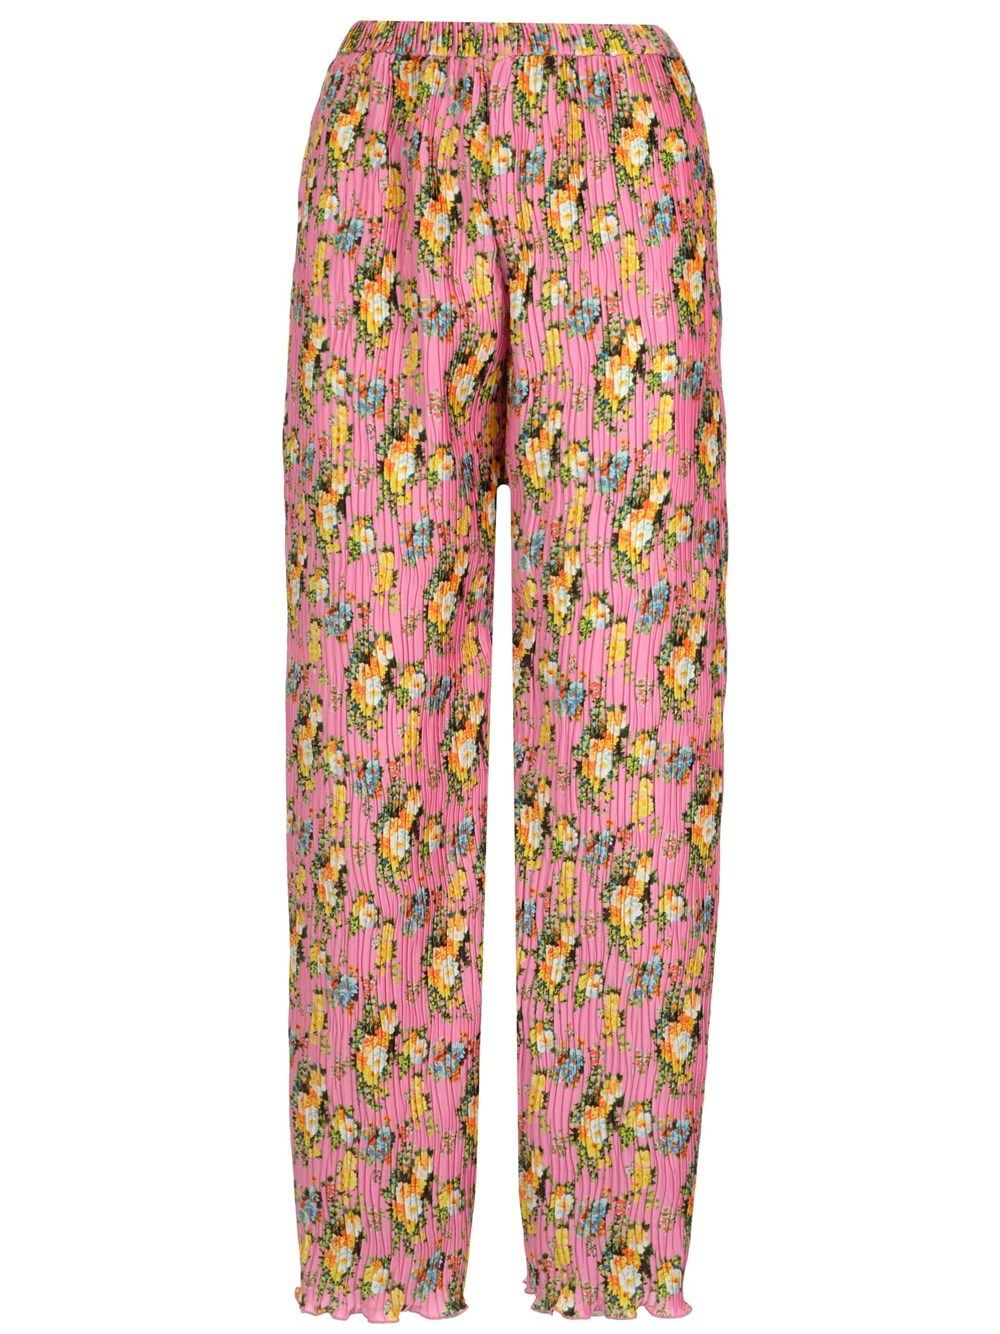 Msgm WOMEN'S 3041MDP0721715012 PINK OTHER MATERIALS PANTS